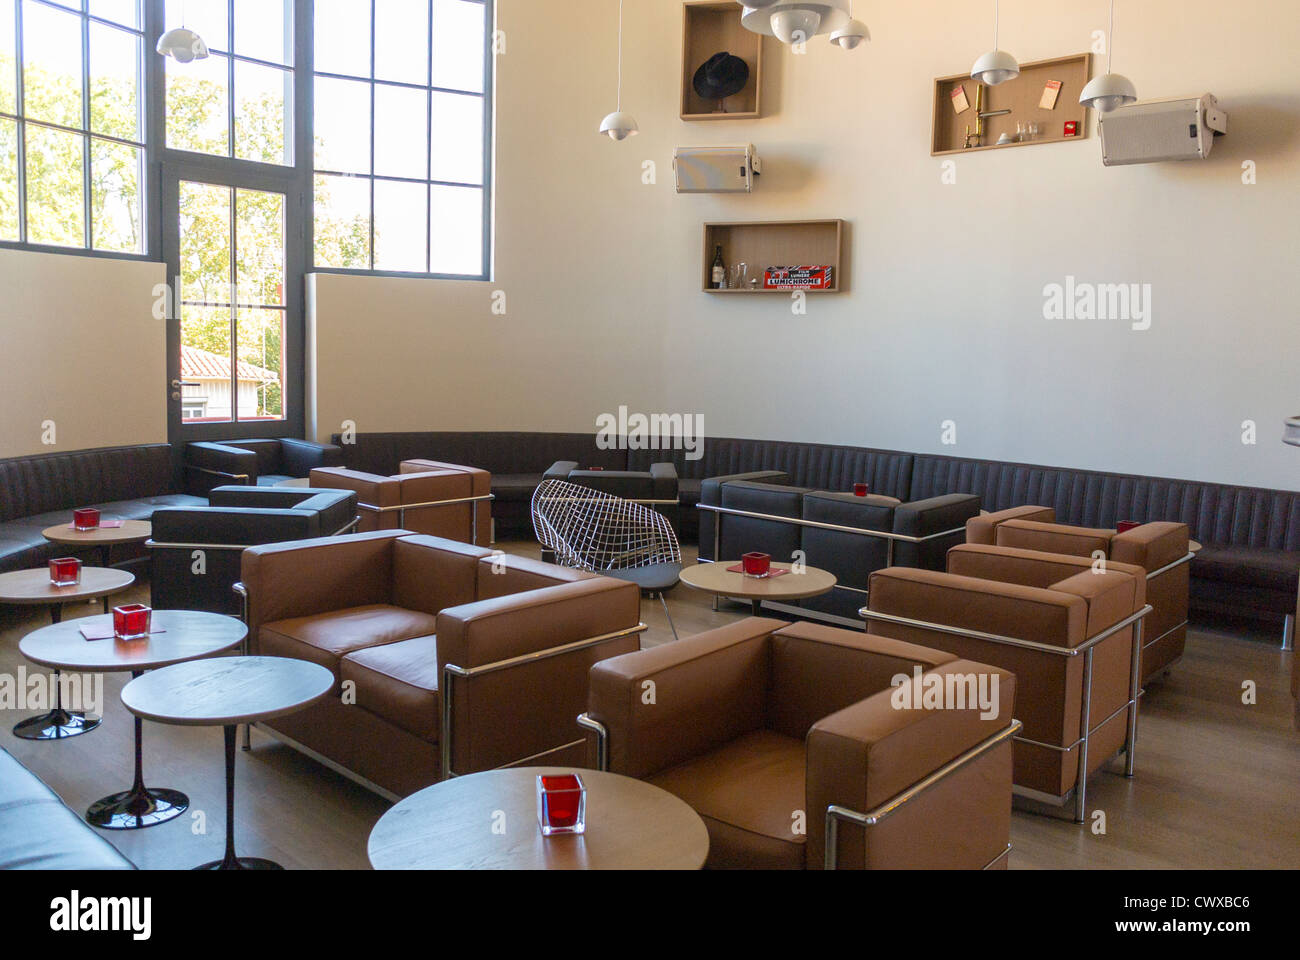 Perpignan France New Trendy Style French Bistro Cafe Bar Lounge Restaurant La Maison Rouge After Renovations Inside DIning Room